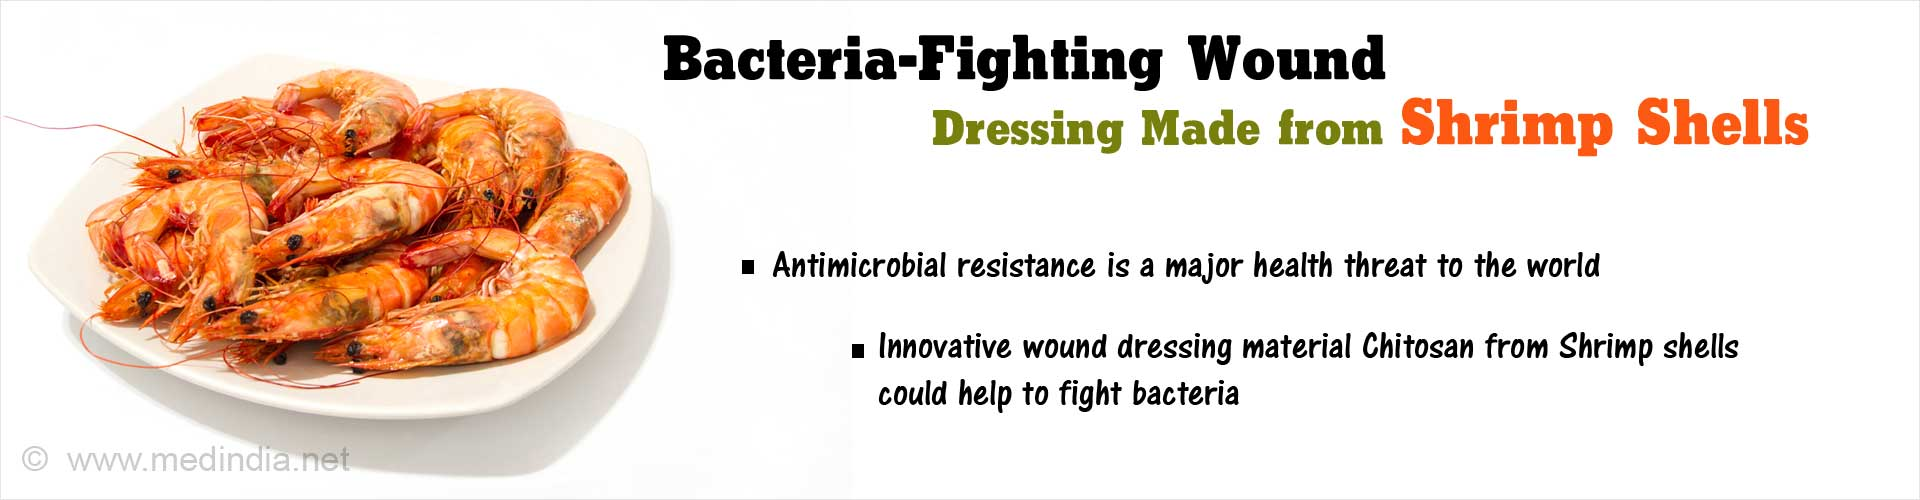 Innovative Wound Dressing From Shrimp Shells